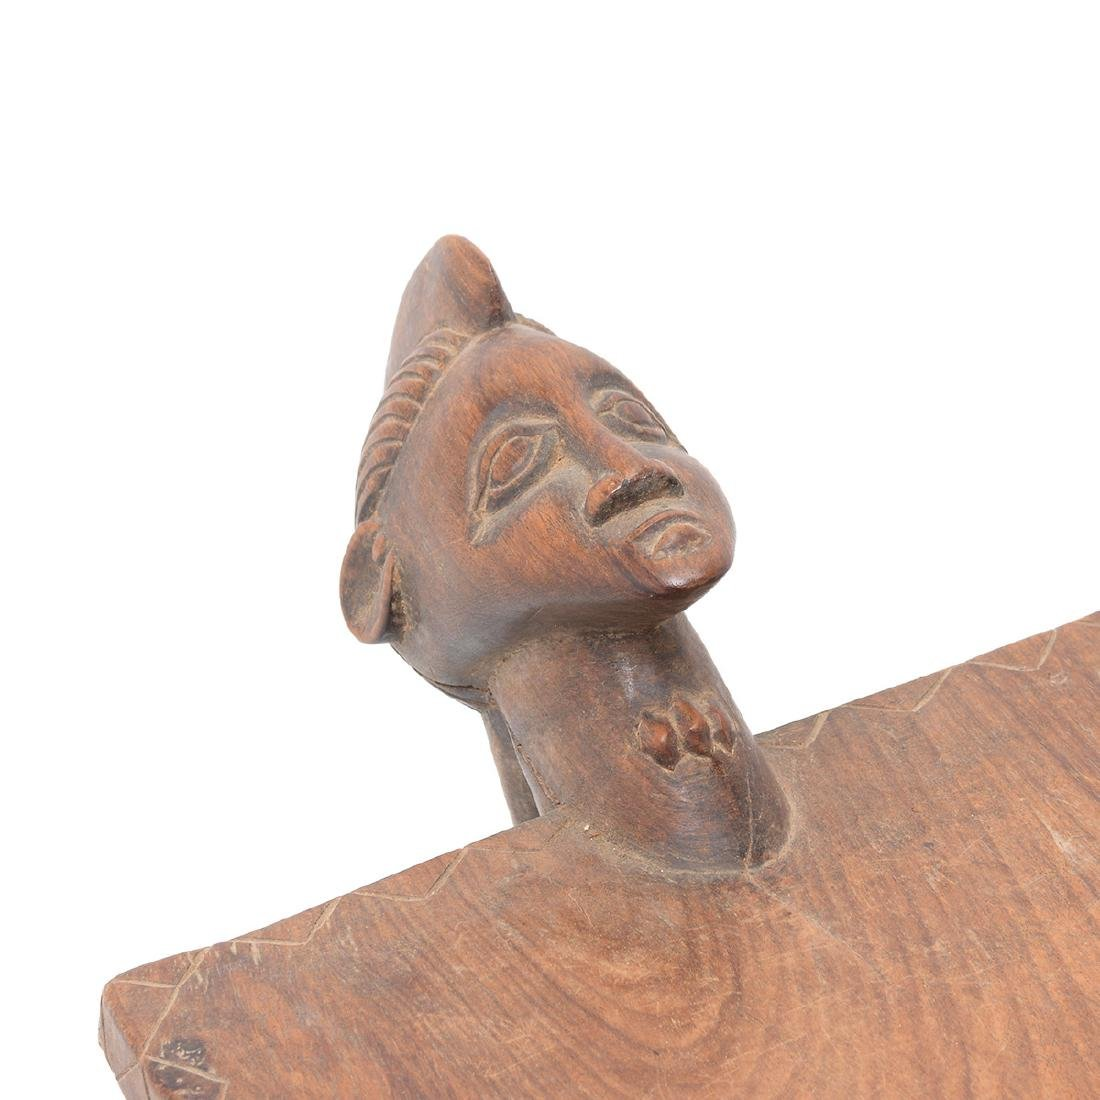 West African Wood Tripod Stool with Face - 2